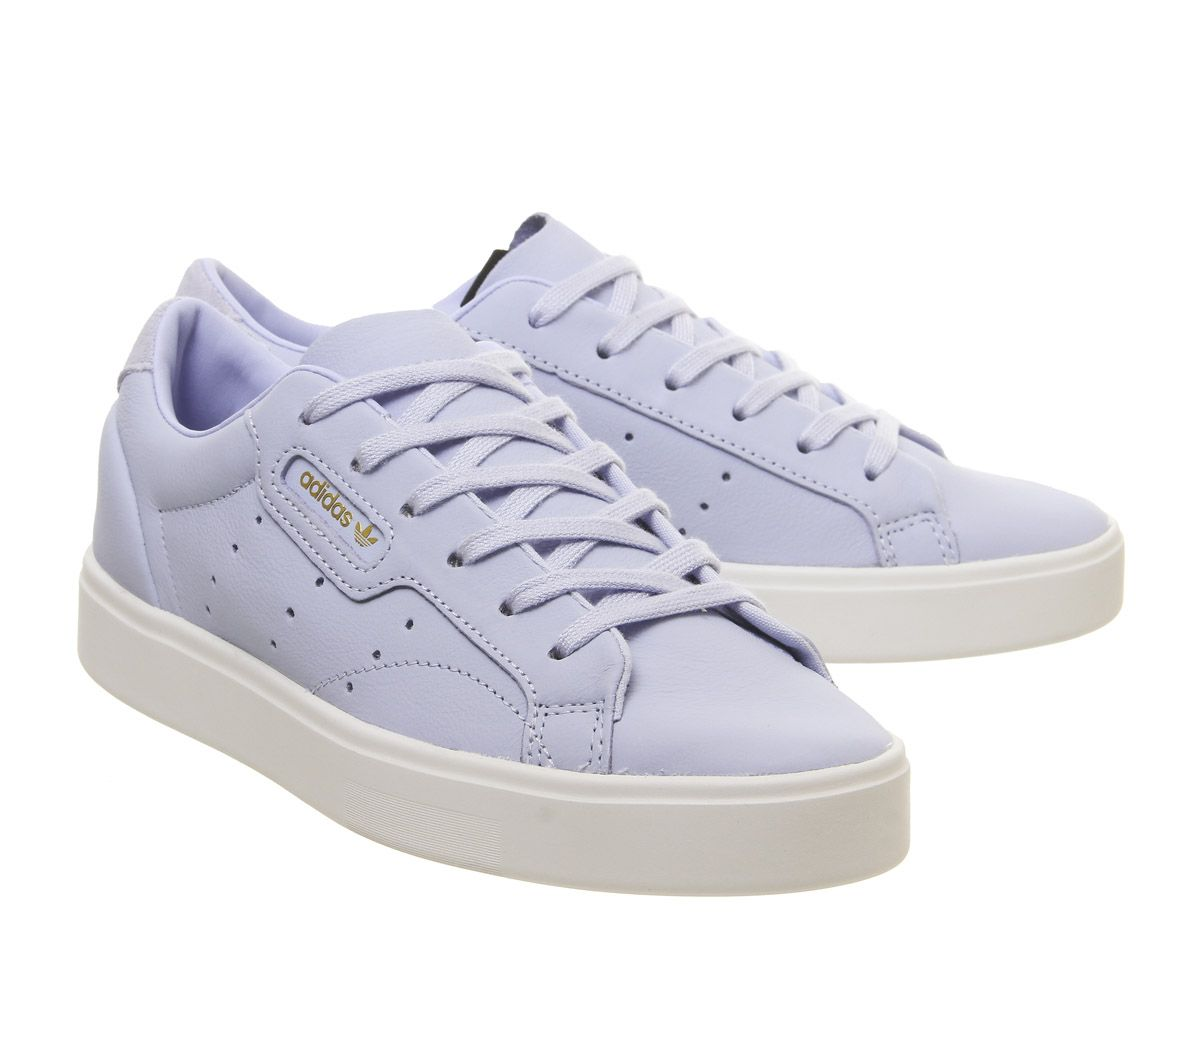 40109a99 Sentinel Womens Adidas Sleek Trainers Periwinkle Crystal White Trainers  Shoes